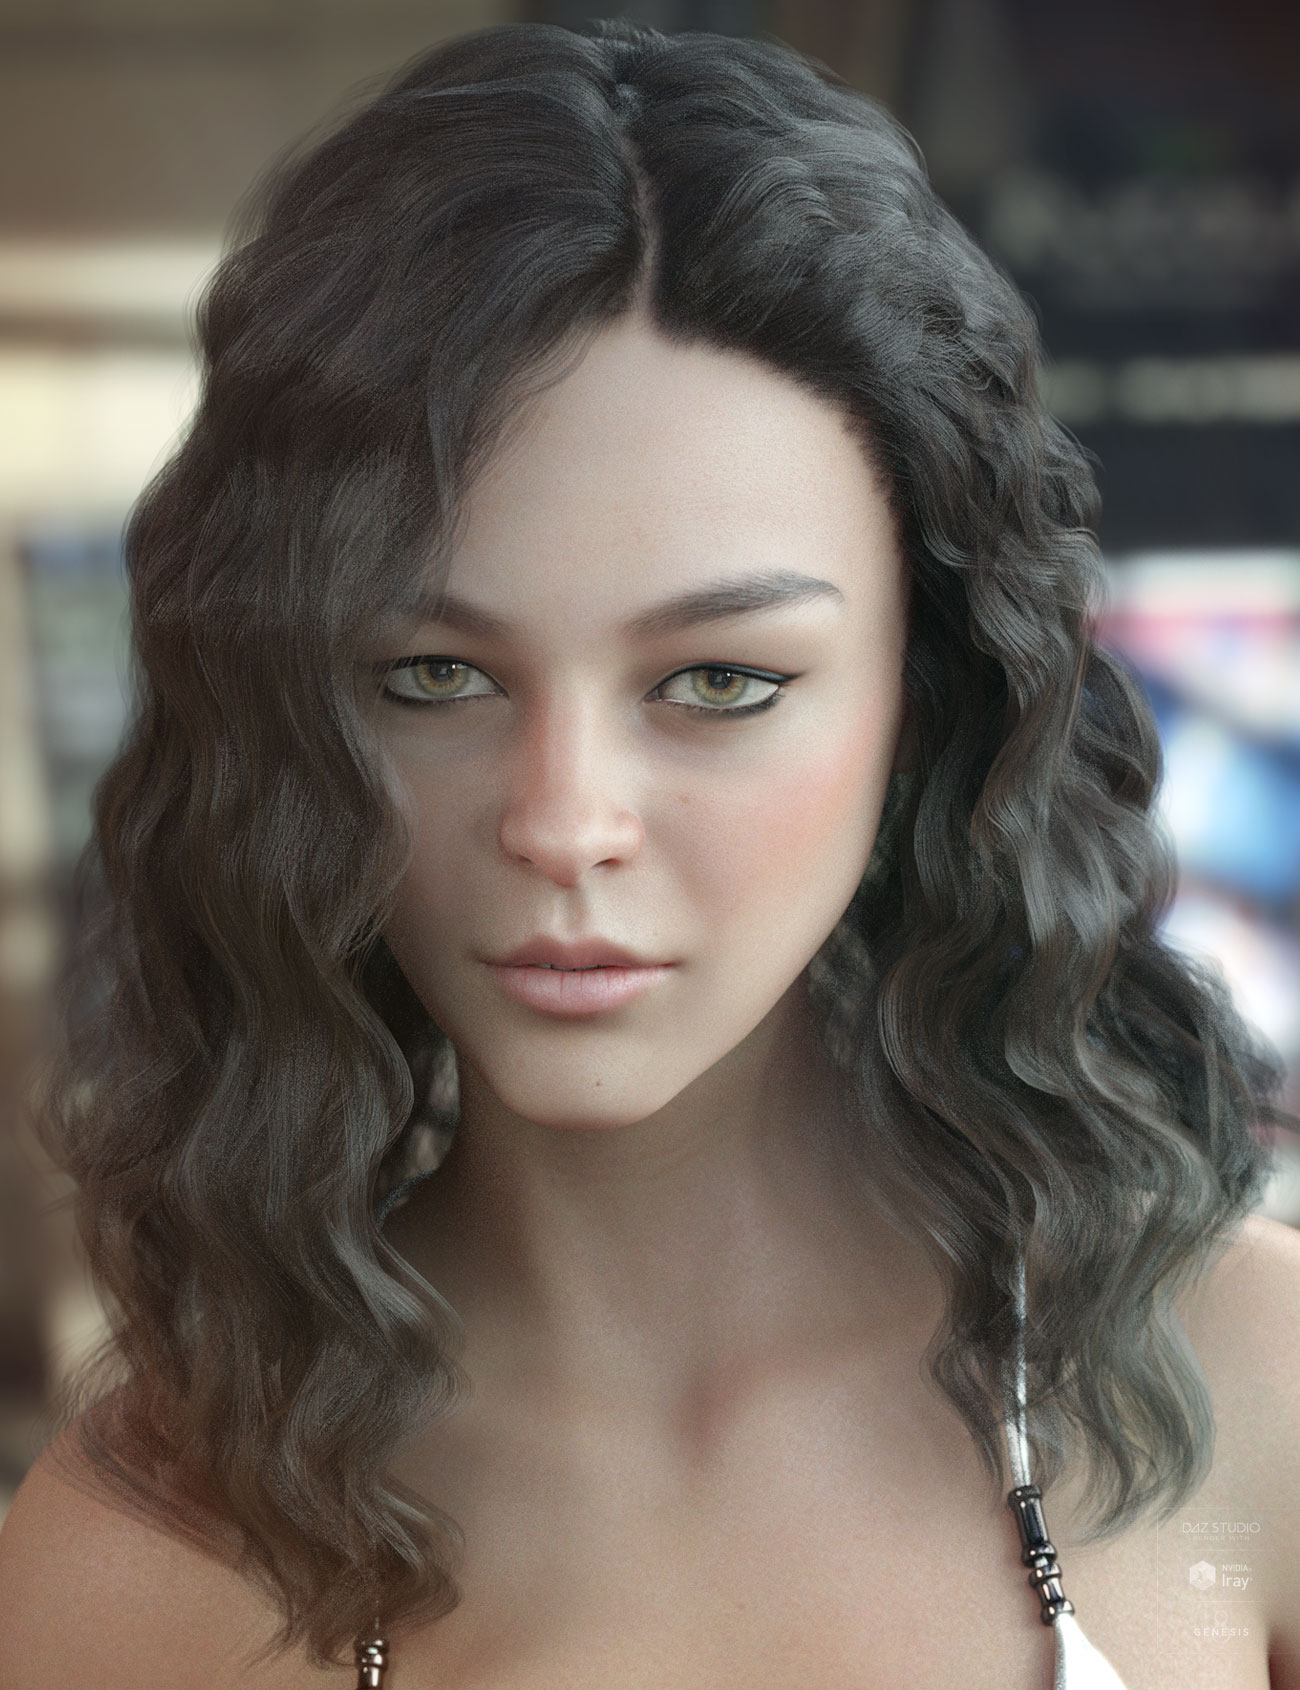 Vance Hair for Genesis 3 & 8 Female(s) by: AprilYSH, 3D Models by Daz 3D